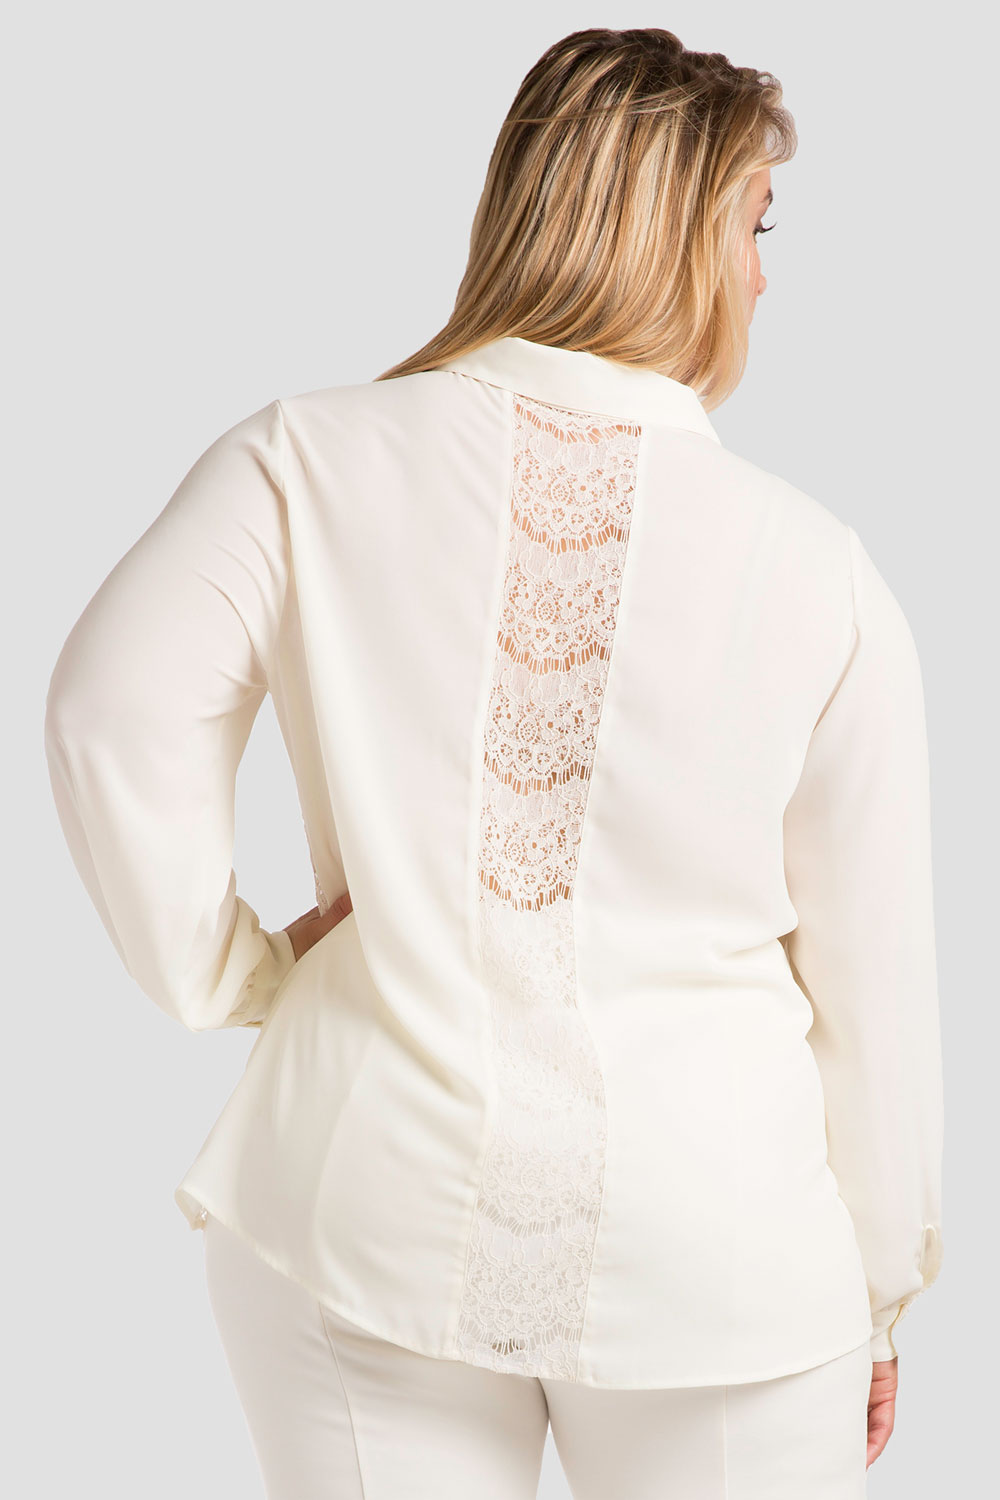 Plus Size Ivory Lace Collared Top